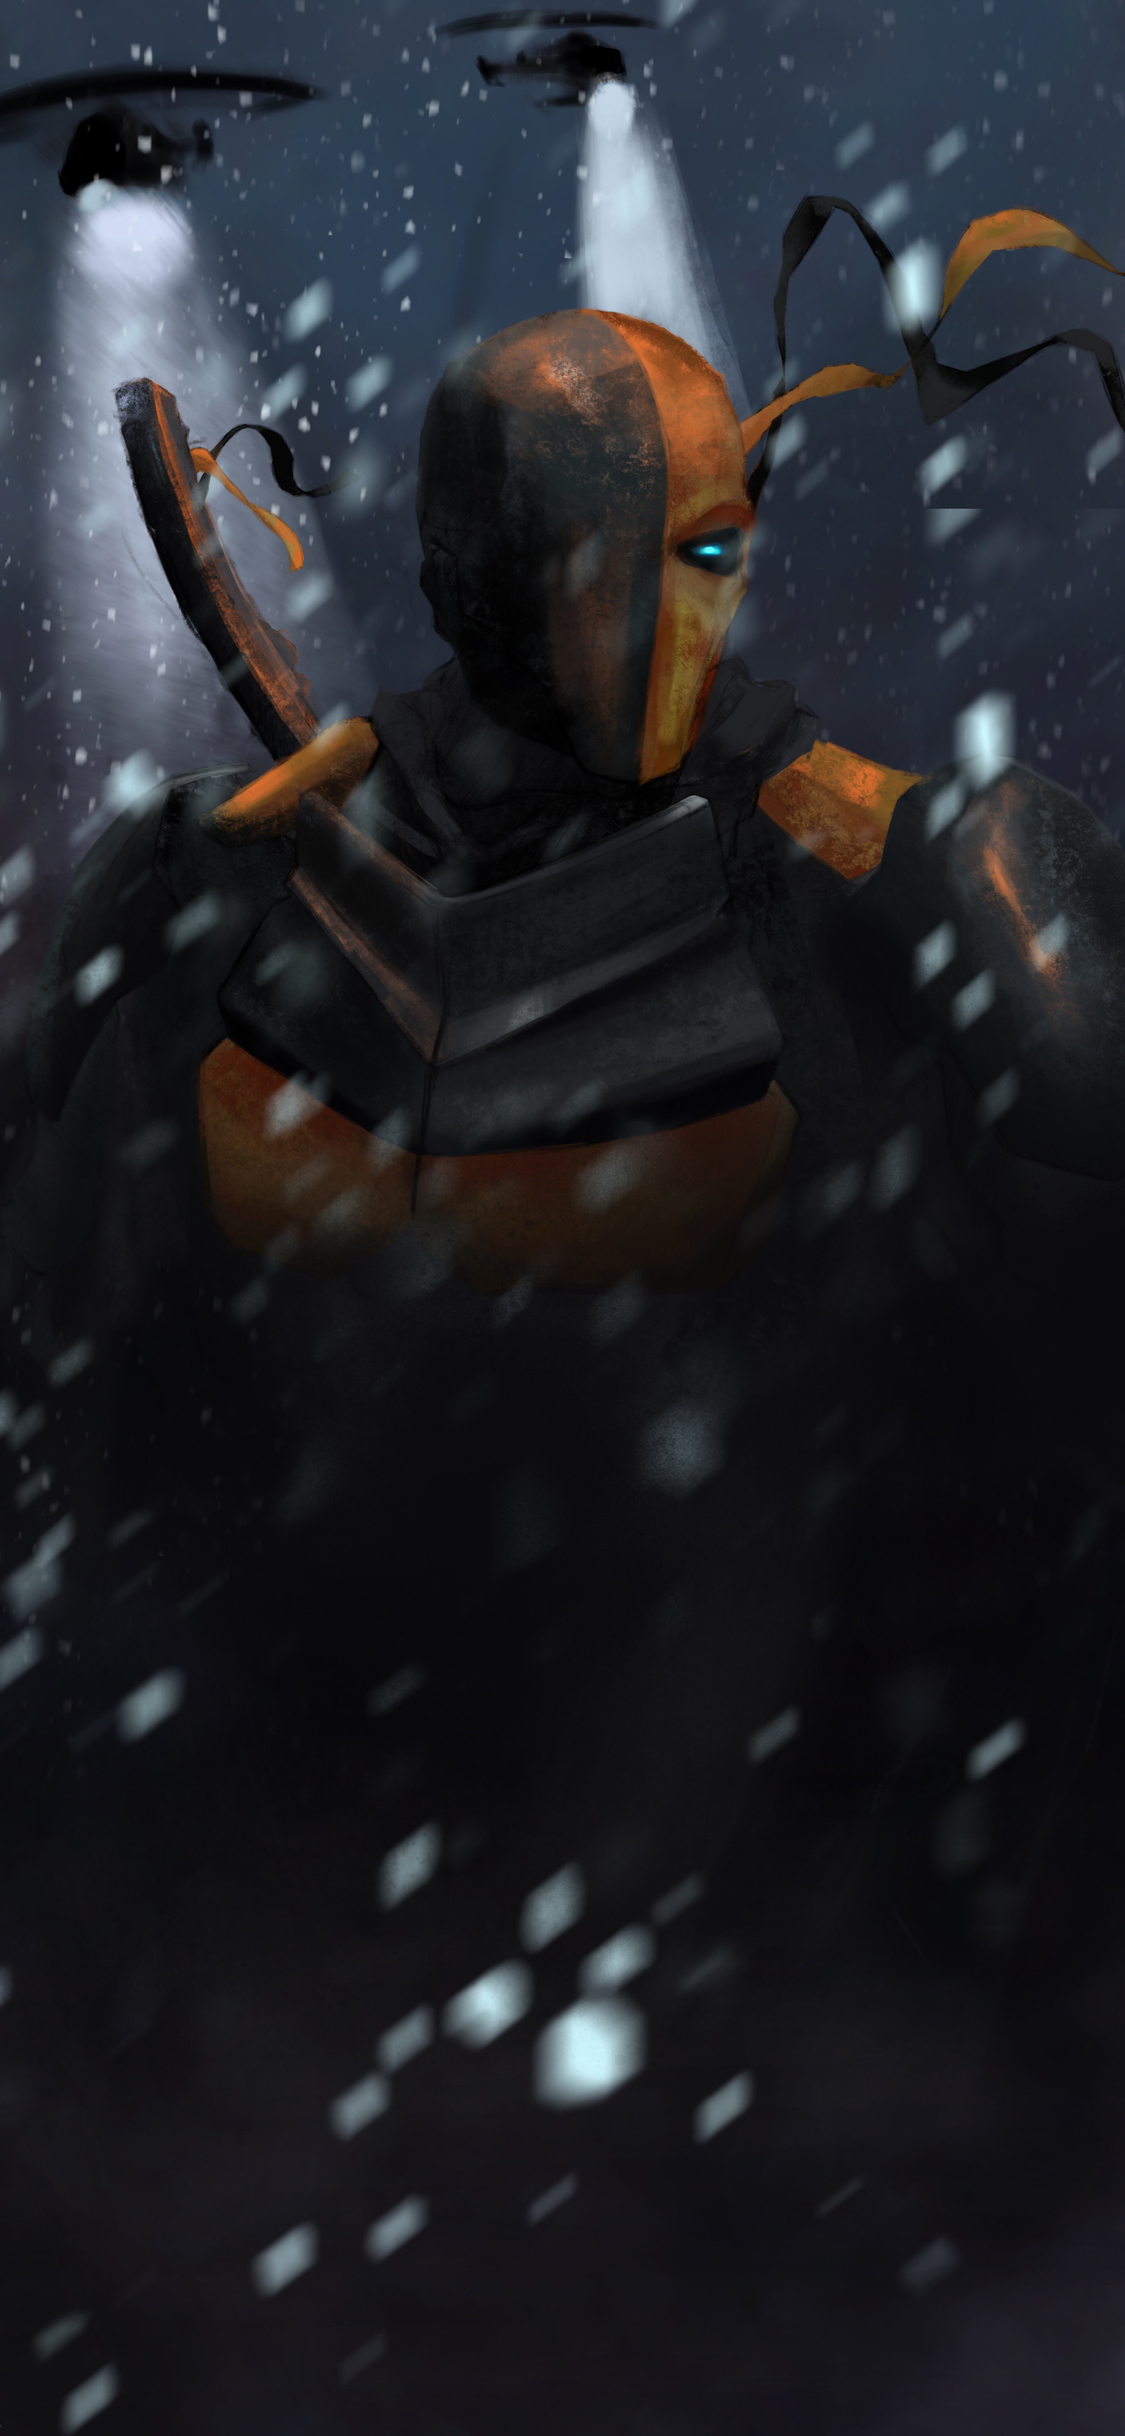 1125x2436 Deathstroke 4k Art Iphone Xs Iphone 10 Iphone X Hd 4k Wallpapers Images Backgrounds Photos And Pictures